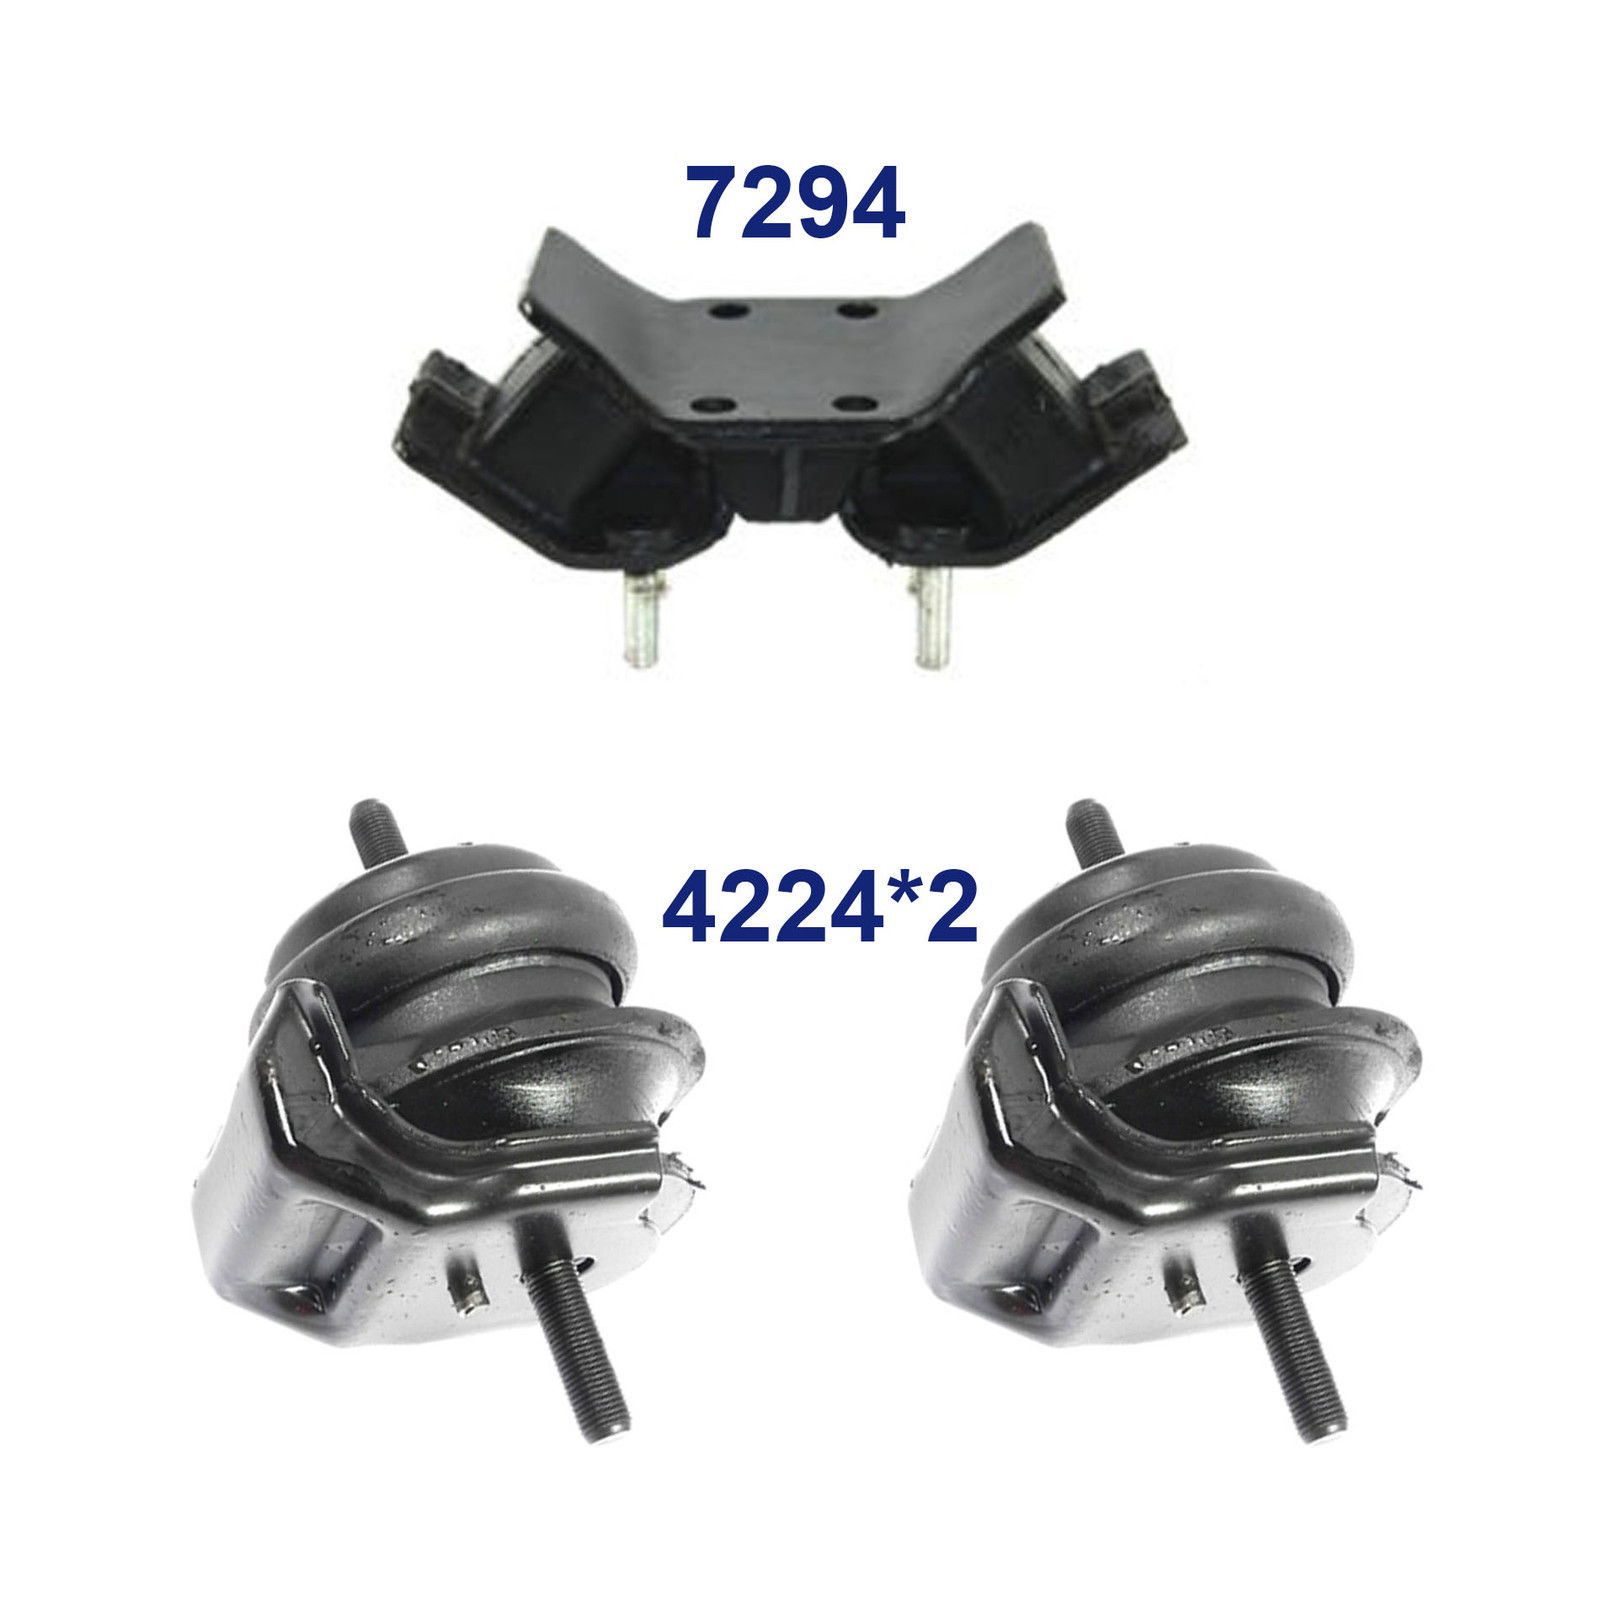 hight resolution of details about for 93 97 lexus gs300 3 0l set 3 engine motor trans mount 4224 4224 7294 m1295